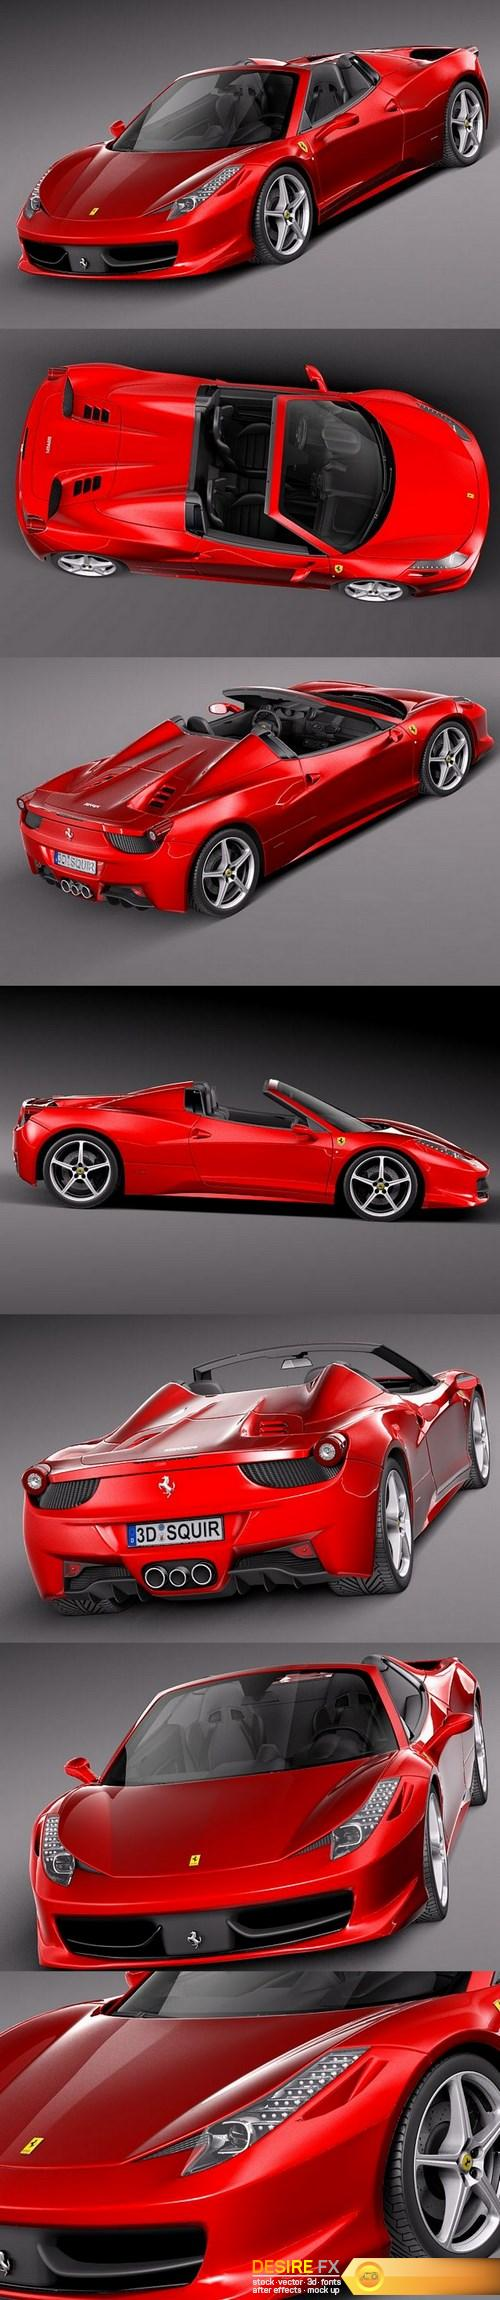 3d-models - Ferrari 458 Spider 2013 3D Model